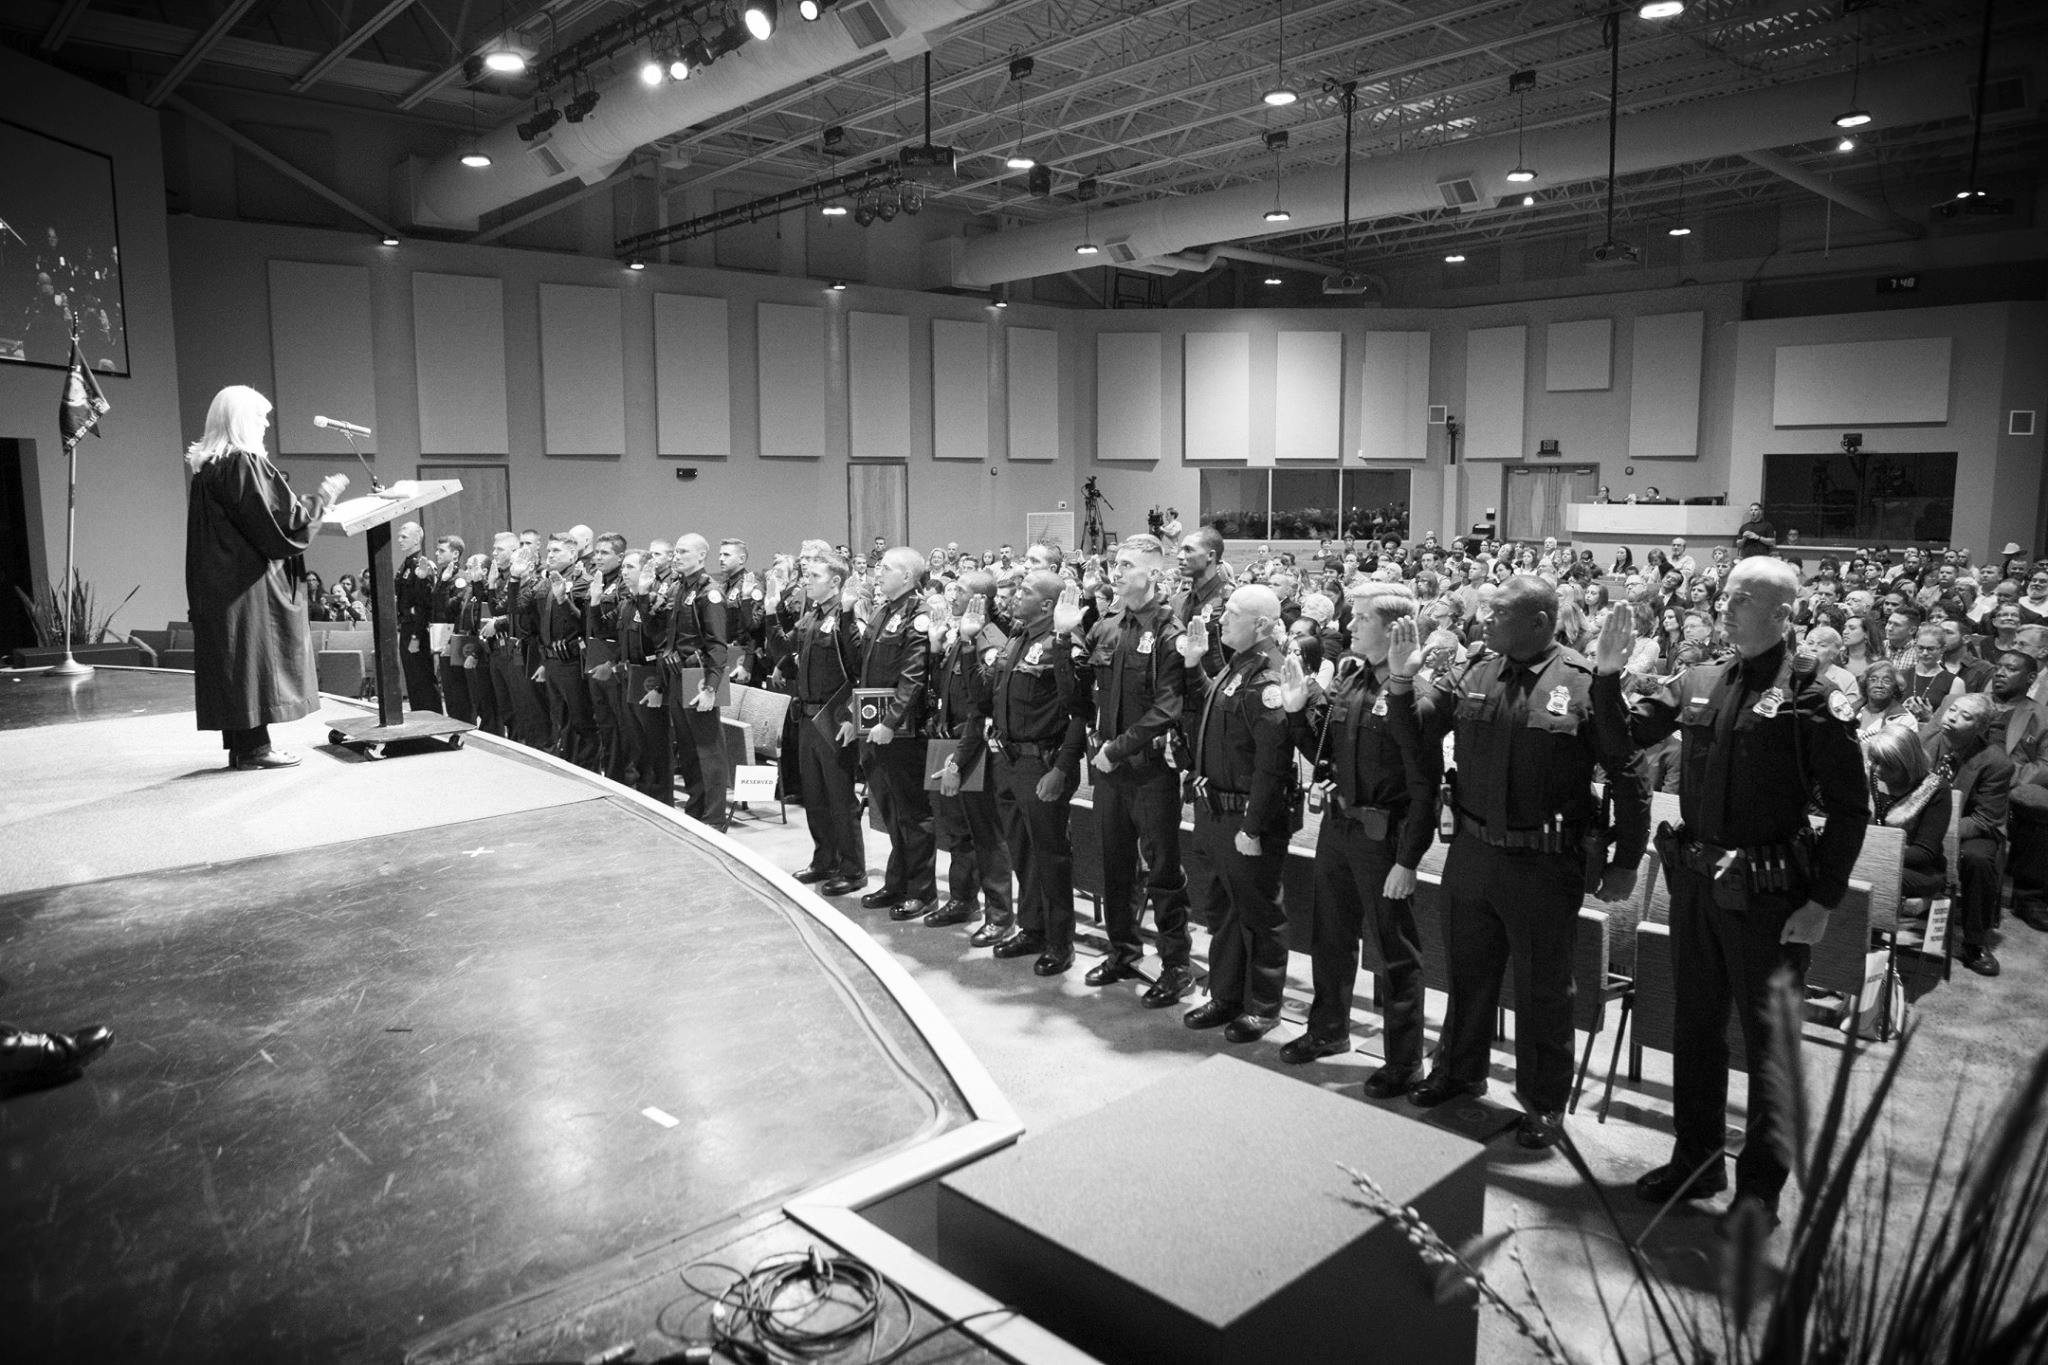 CPD Police Academy Class 2017-1 taking their Oath of Office with Judge Sherry Paty